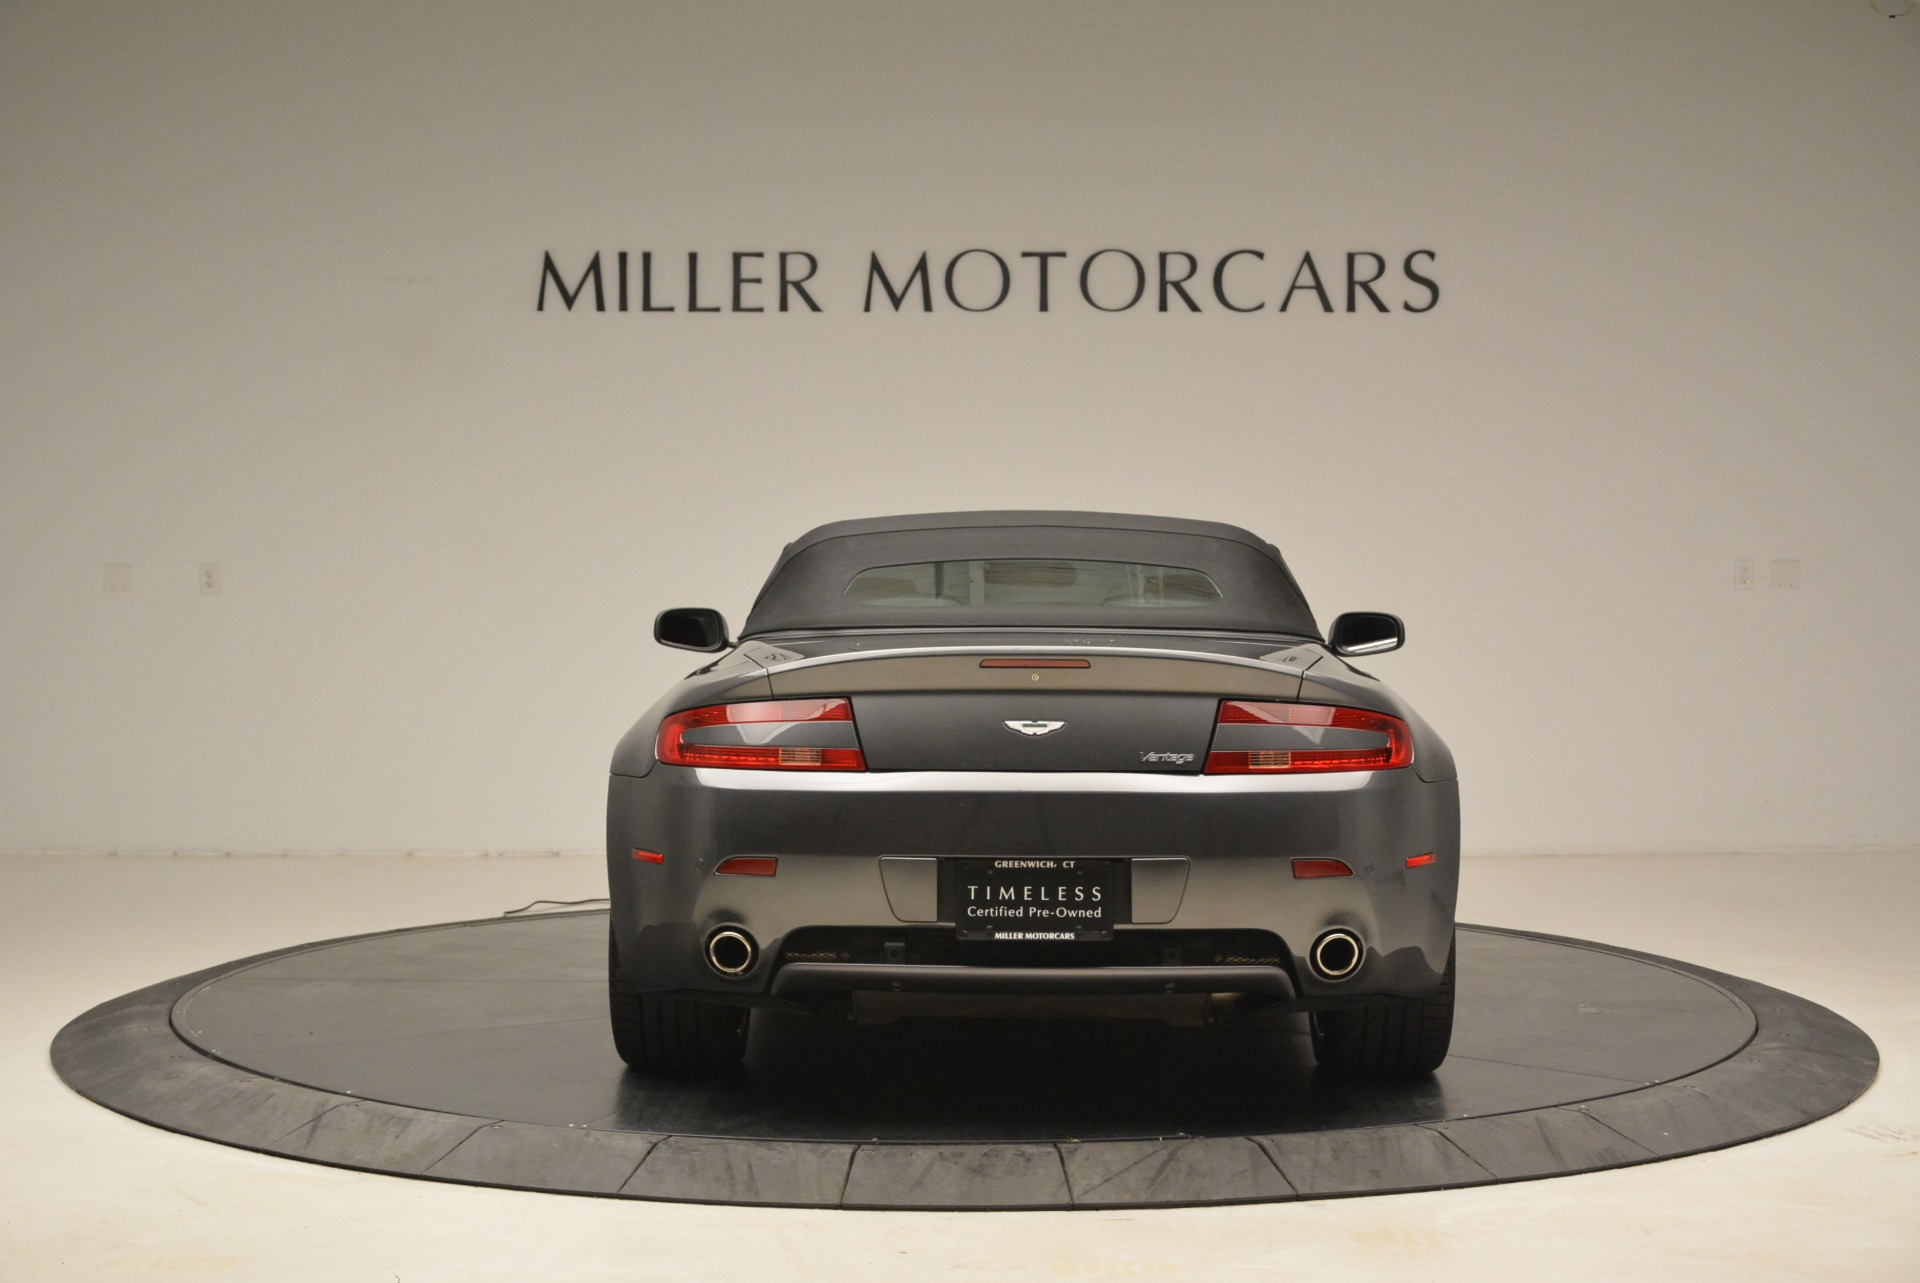 Used 2009 Aston Martin V8 Vantage Roadster For Sale In Westport, CT 2123_p18